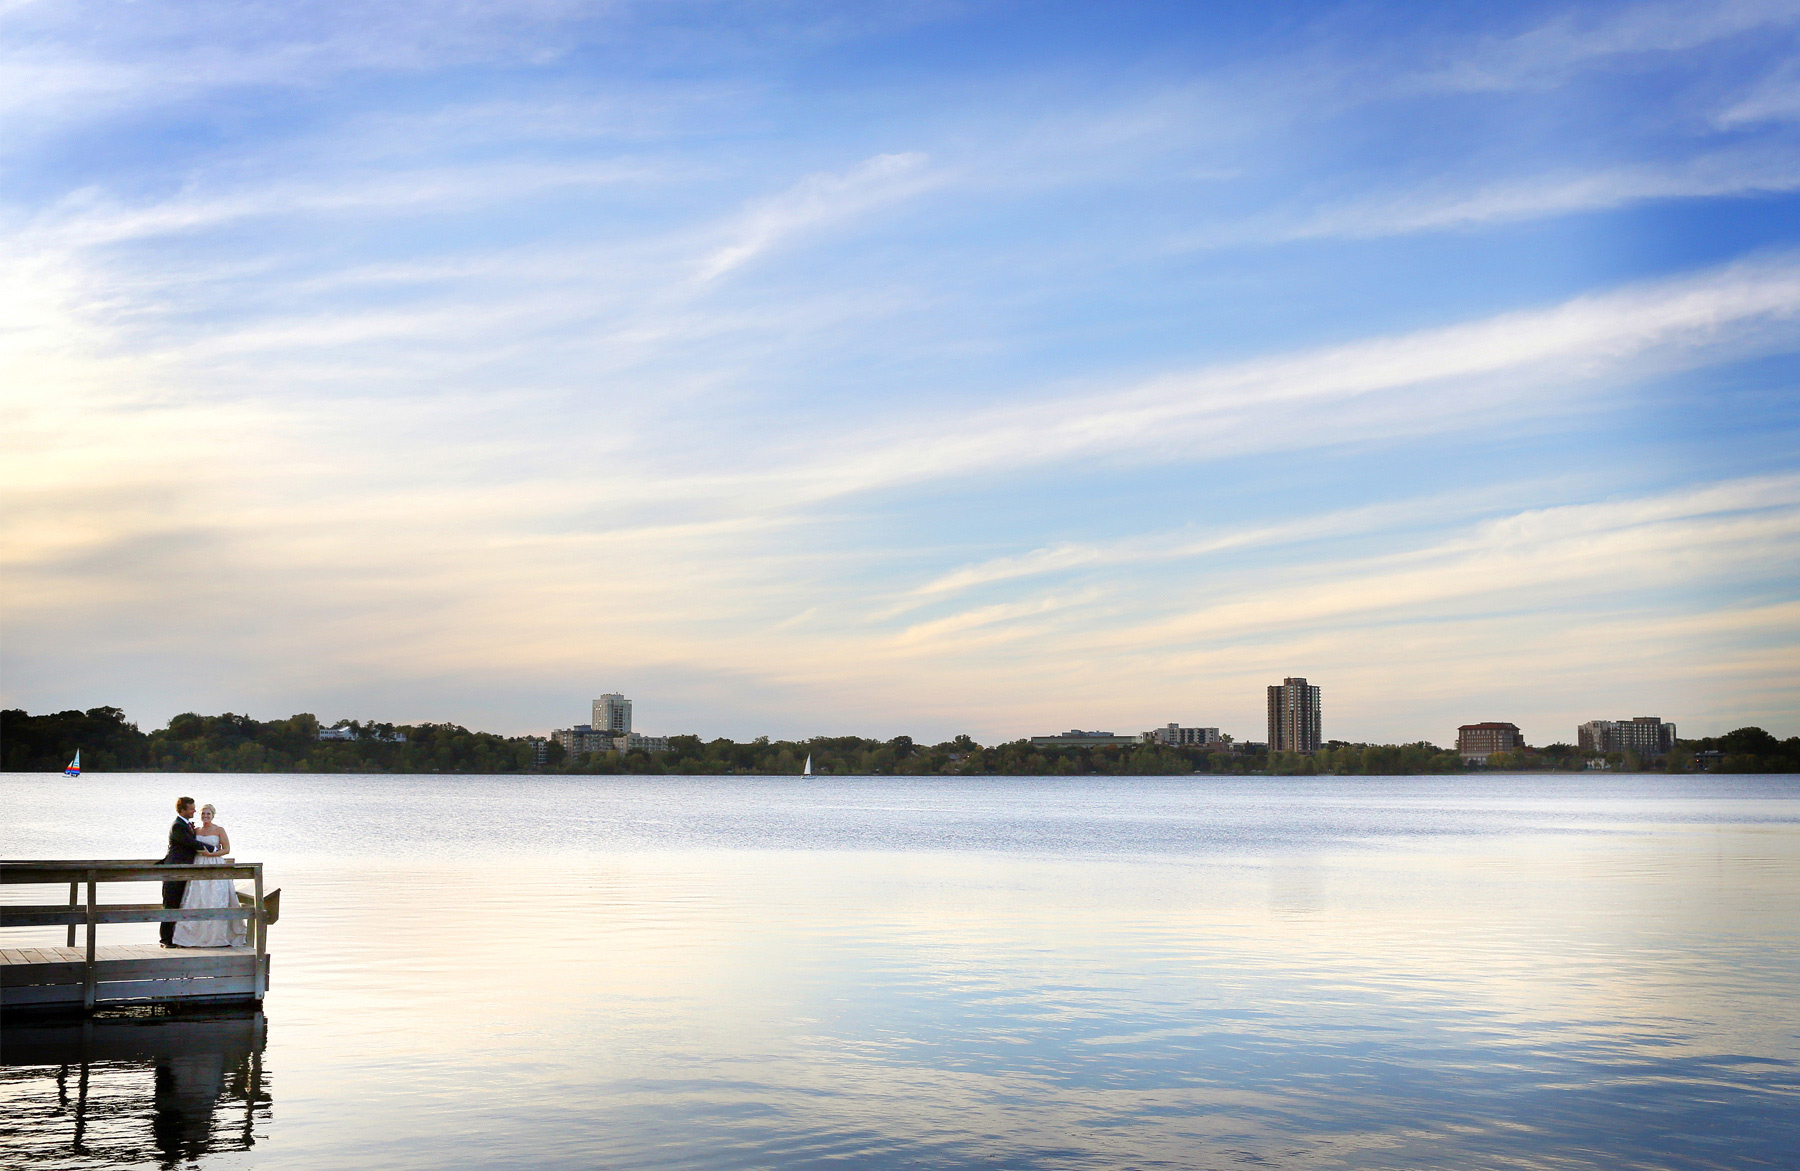 11-Minneapolis-Minnesota-Wedding-Photography-by-Vick-Photography--Lake-Calhoun-Sunset-Kristen-&-Nick.jpg